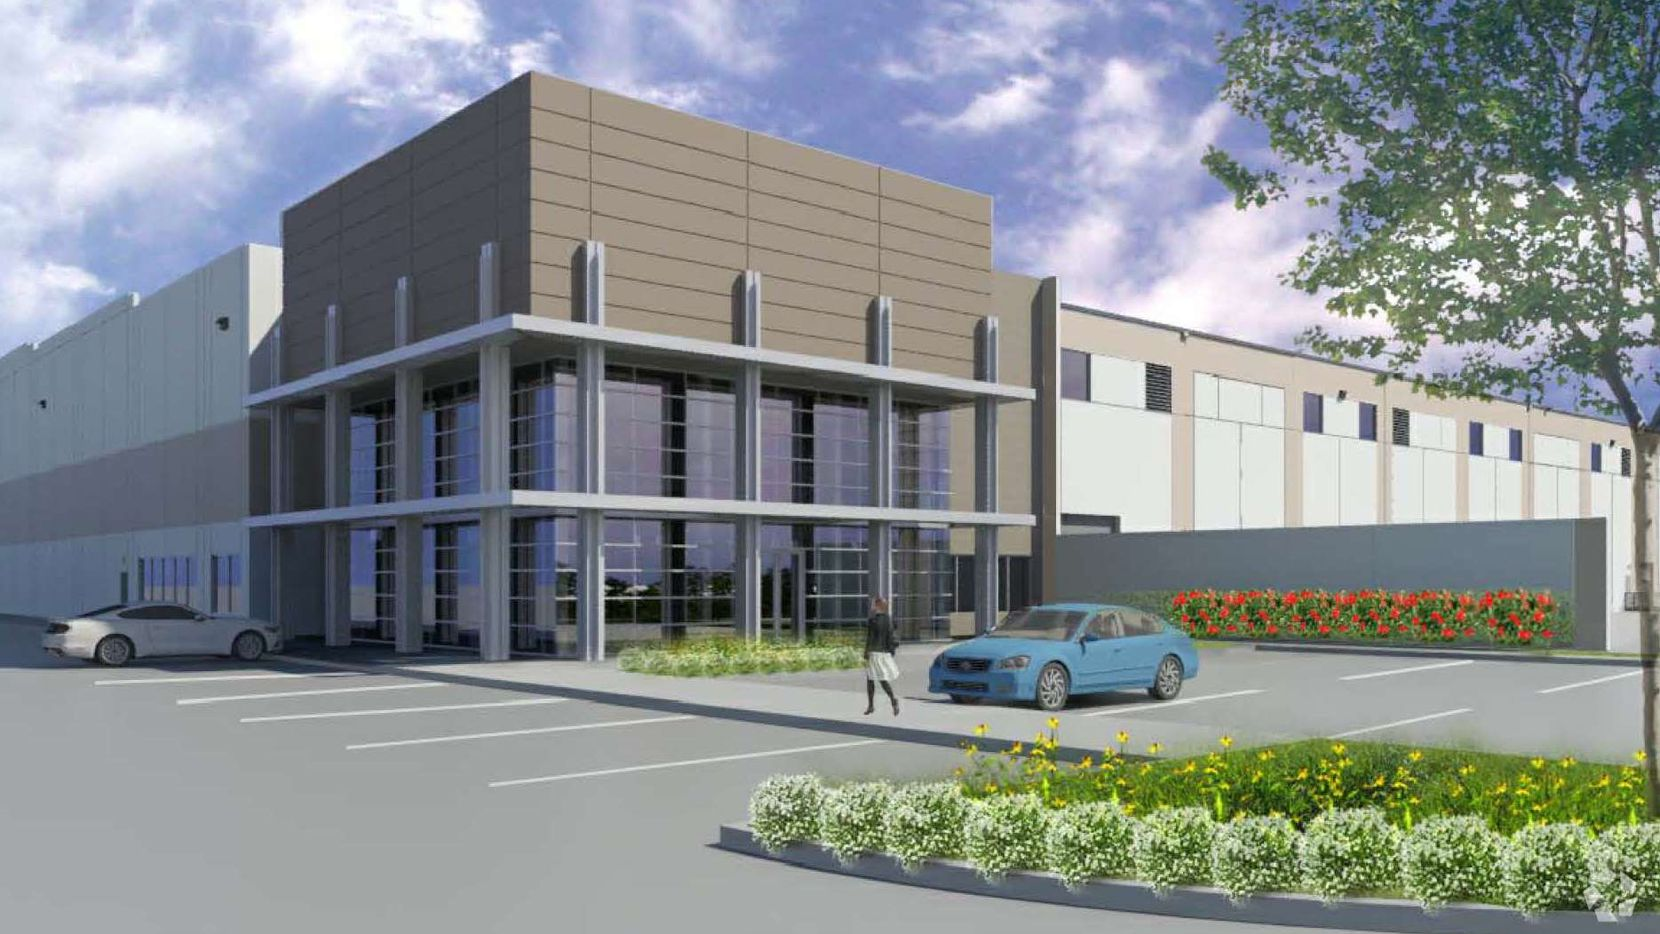 Dallas-based Copeland Commercial is developing the new warehouse project, which JLL will lease. (JLL)